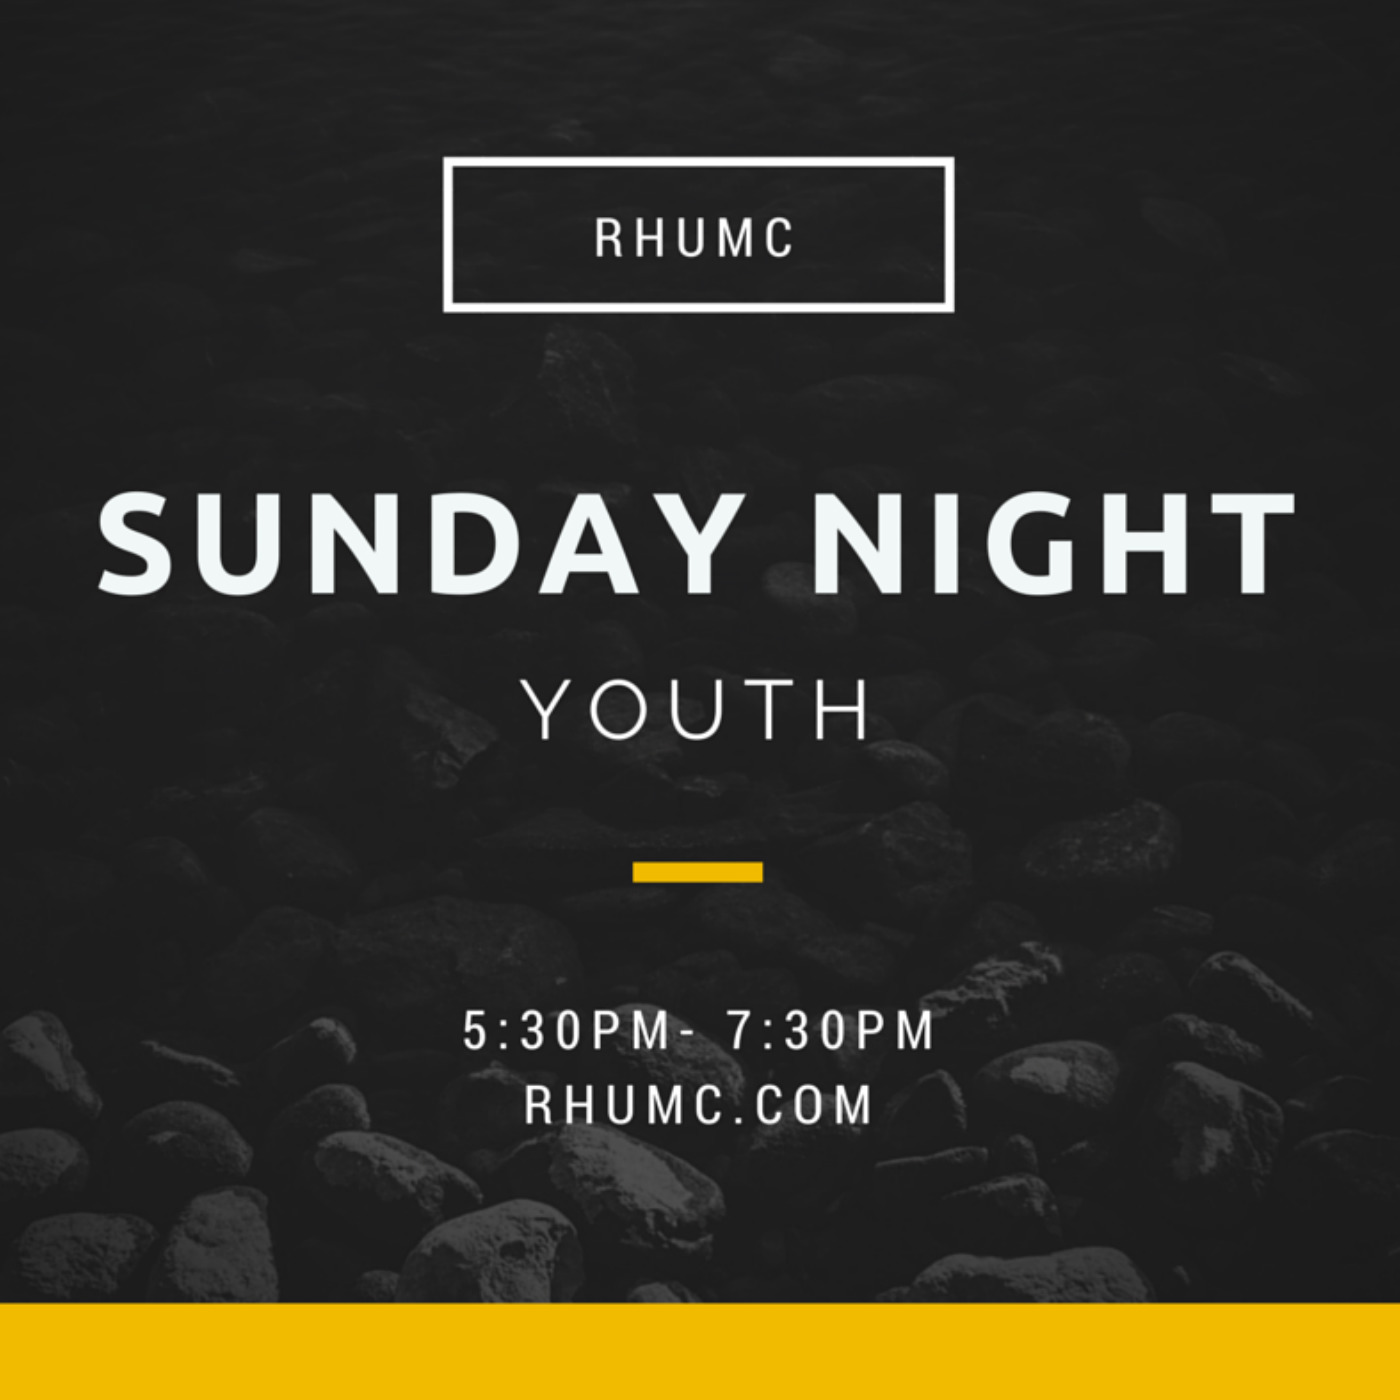 RHUMC Youth Talks